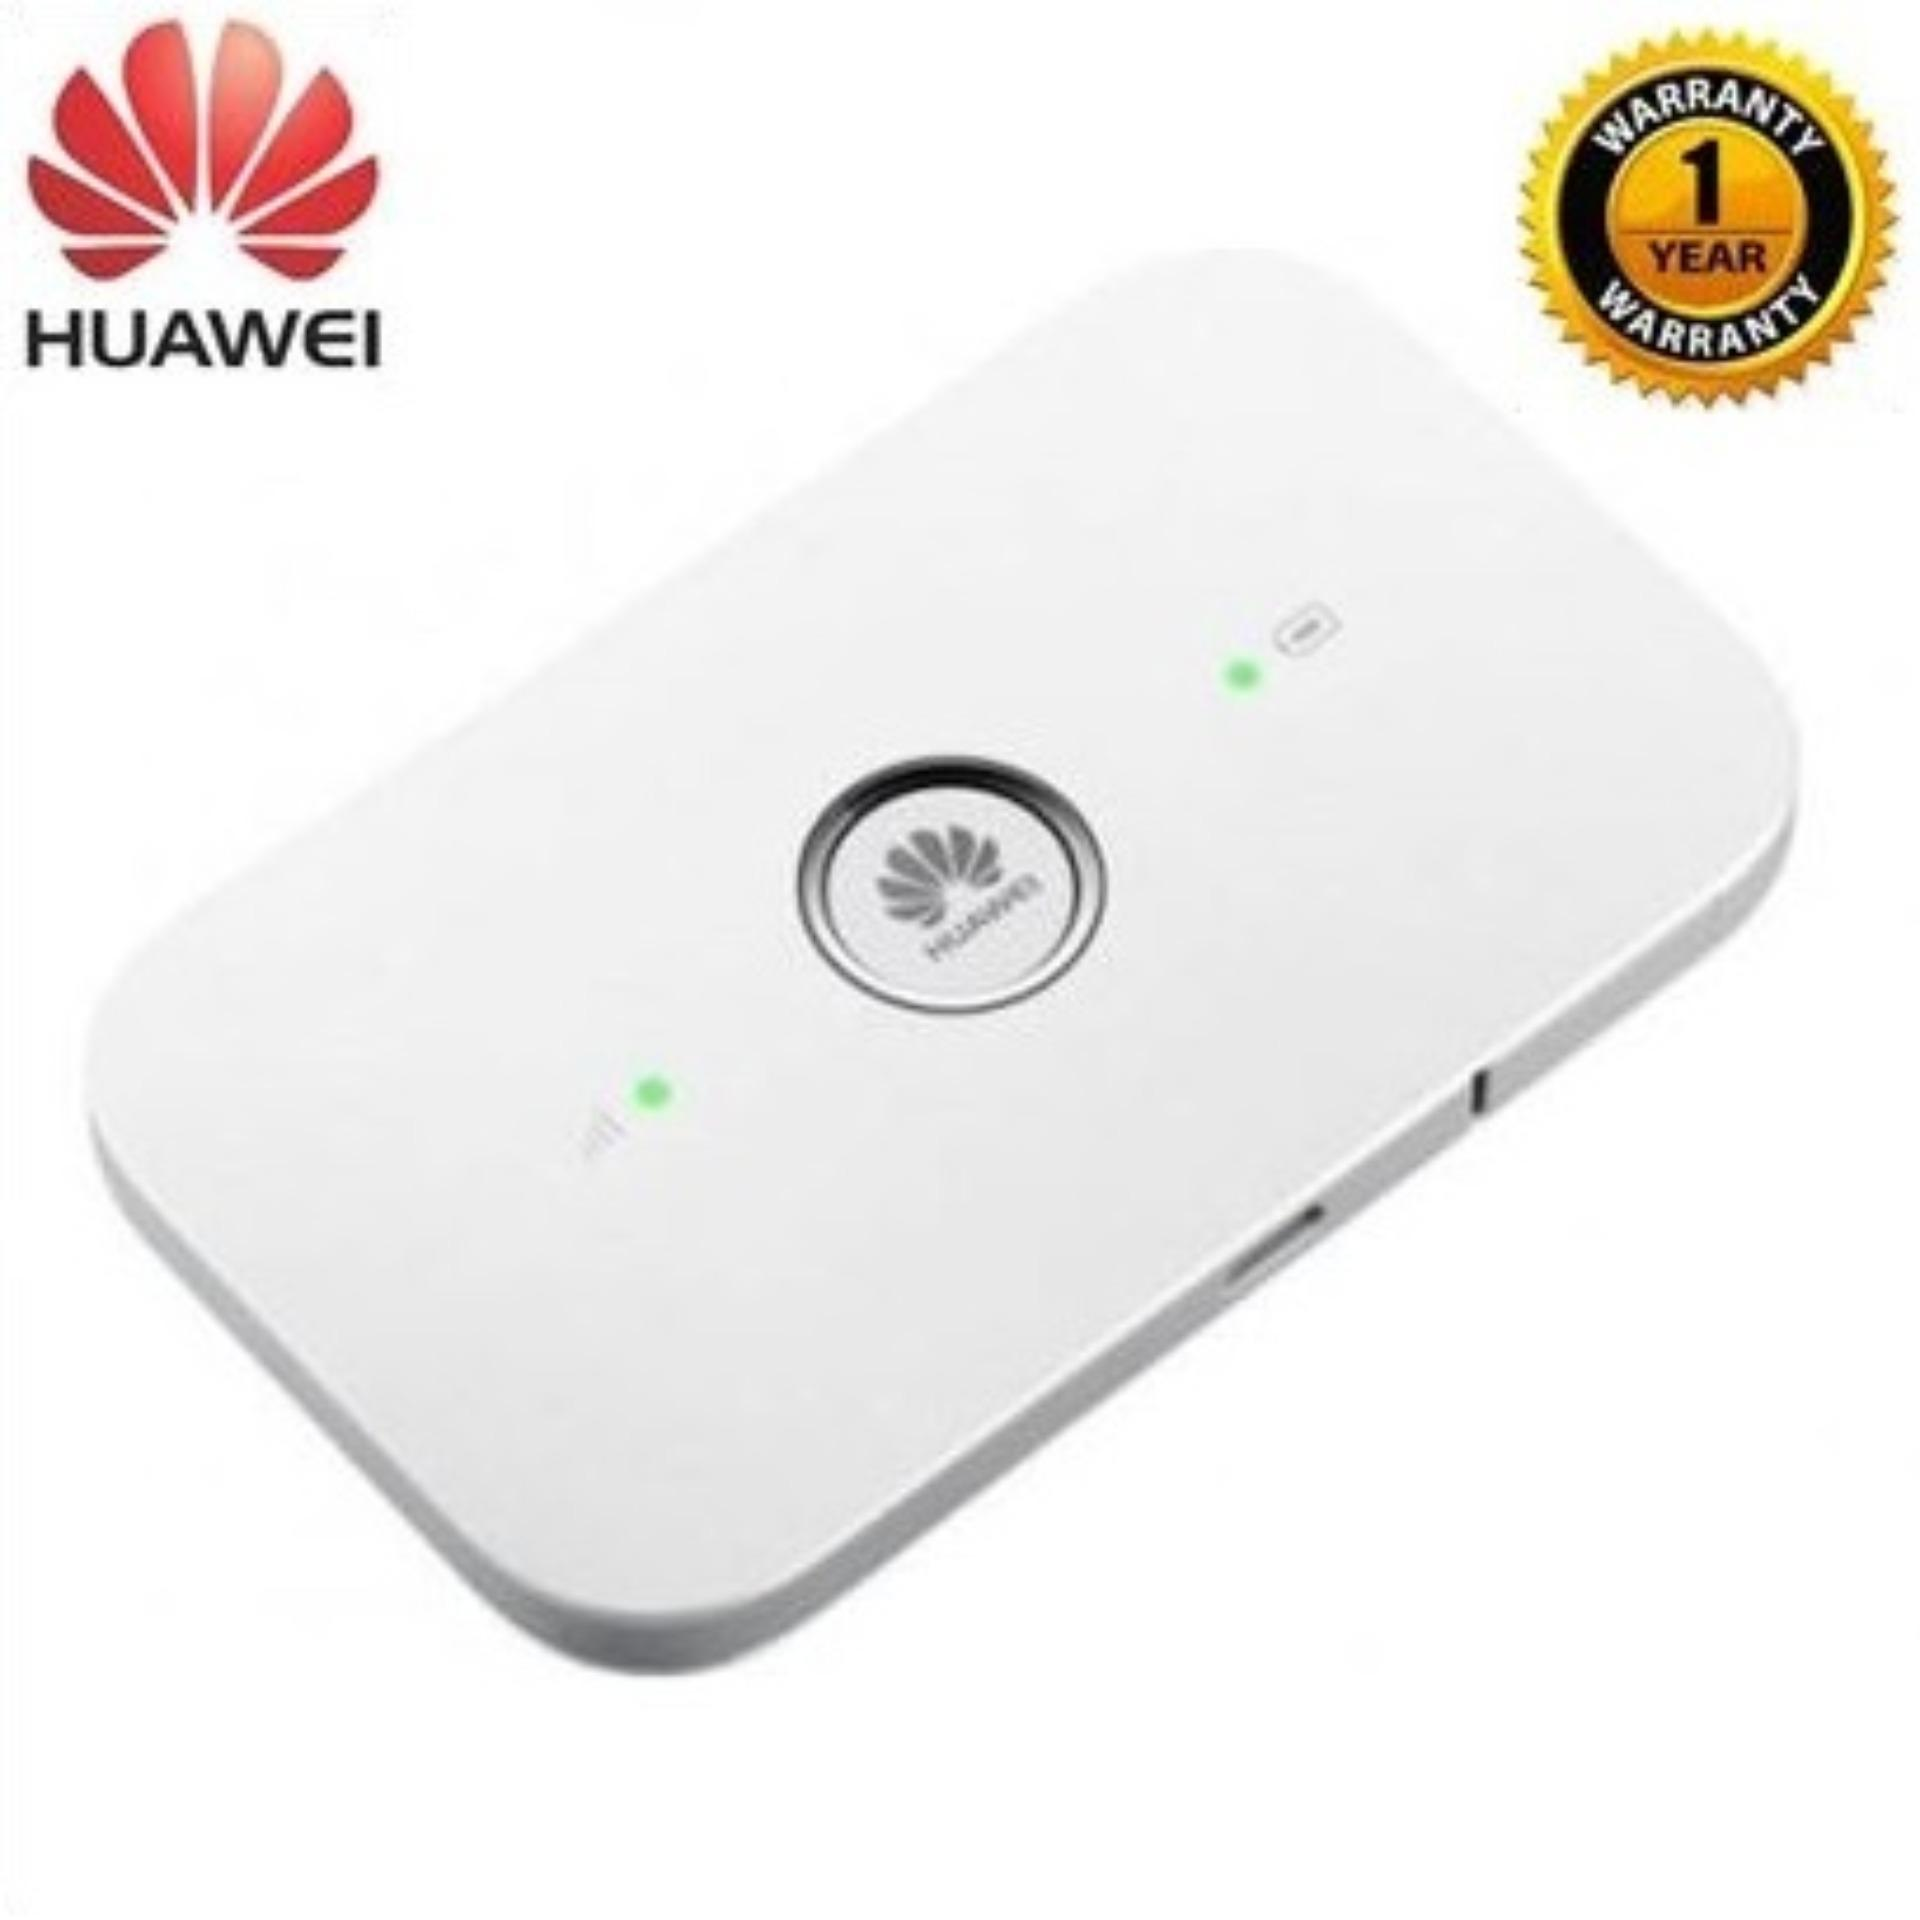 Huawei MIFI 4G Router (Model-E5573Cs-609)